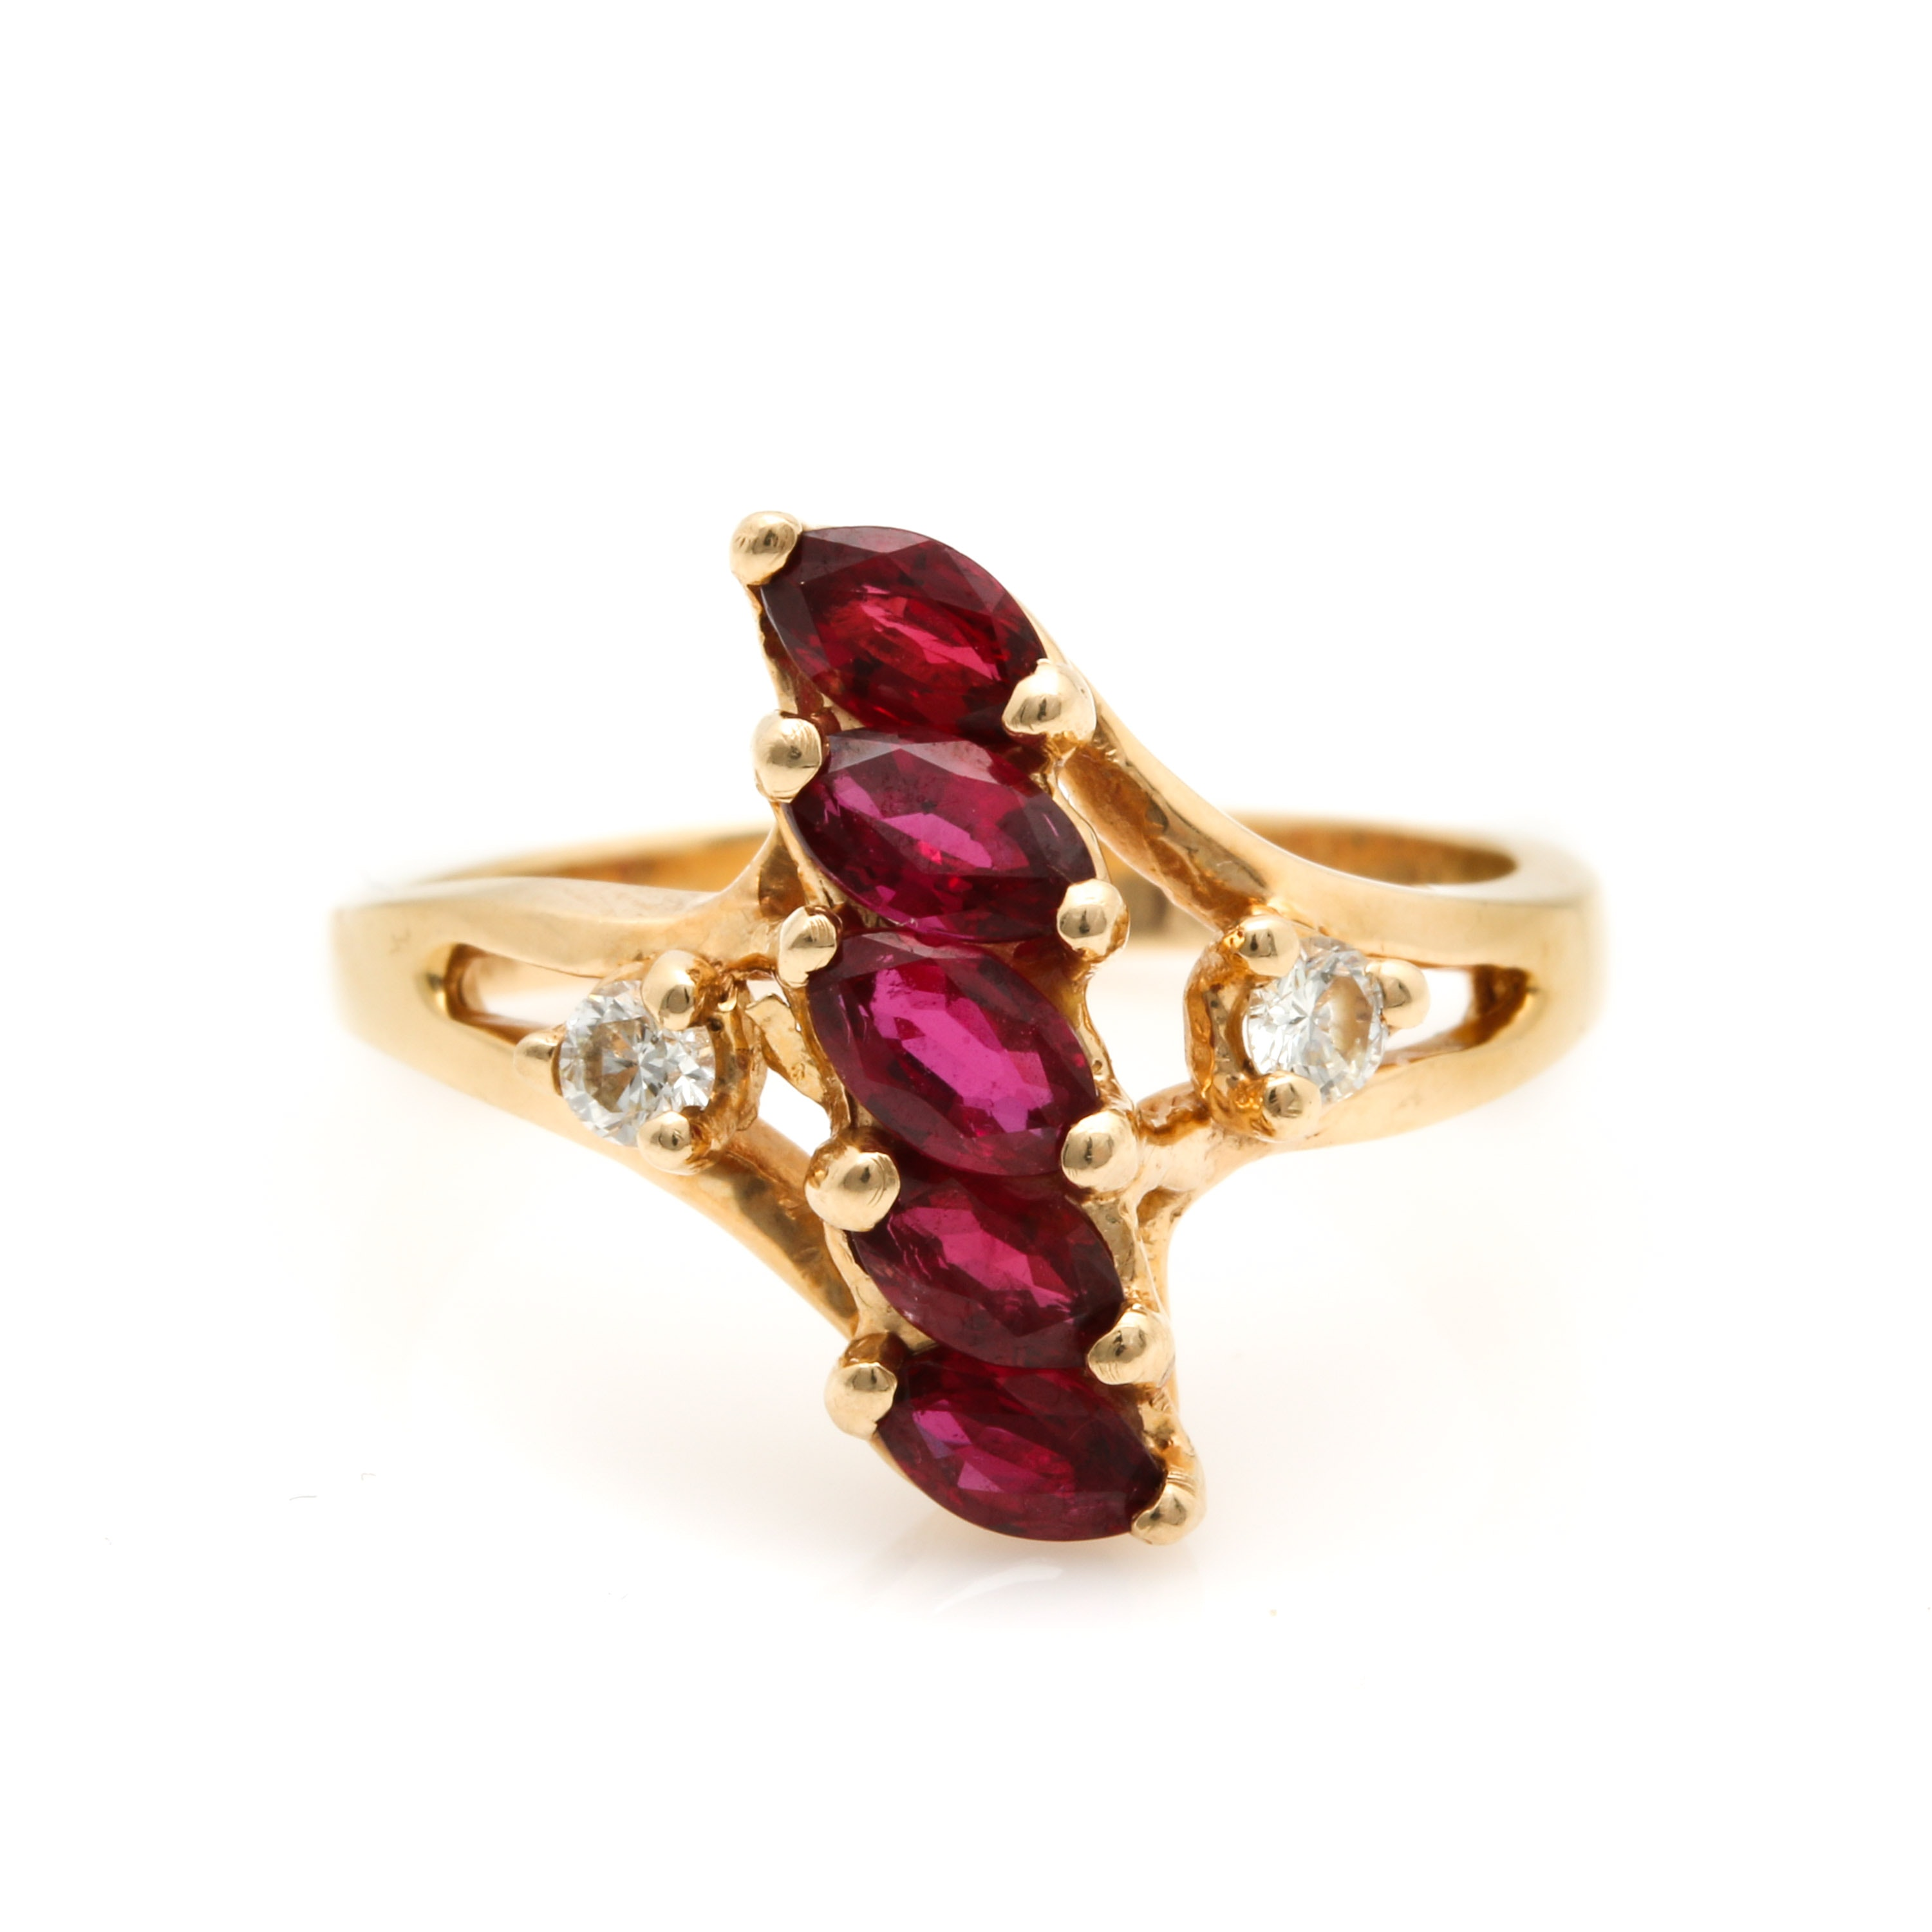 Clyde Duneier 14K Yellow Gold Ruby and Diamond Ring